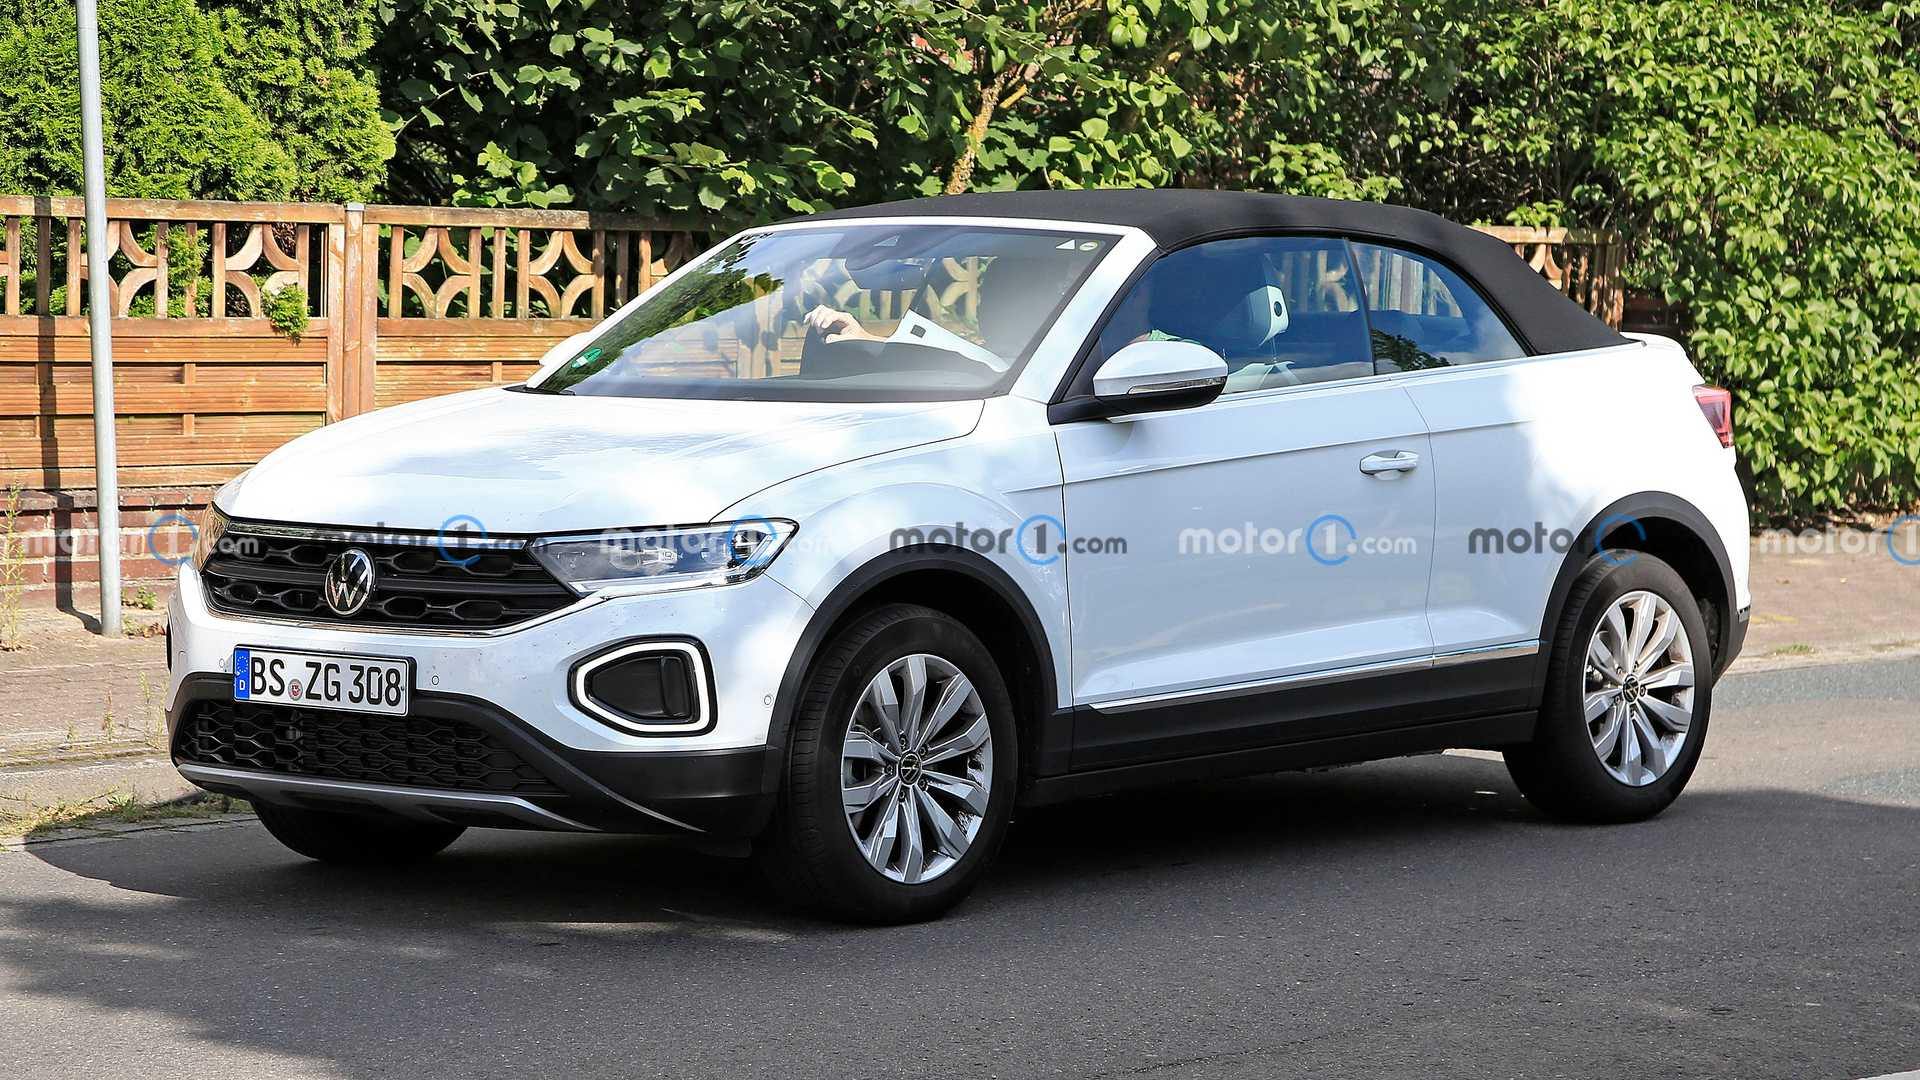 https://cdn.motor1.com/images/mgl/MNO0w/s6/vw-t-roc-cabriolet-facelift-first-spy-photo-front-three-quarters.jpg